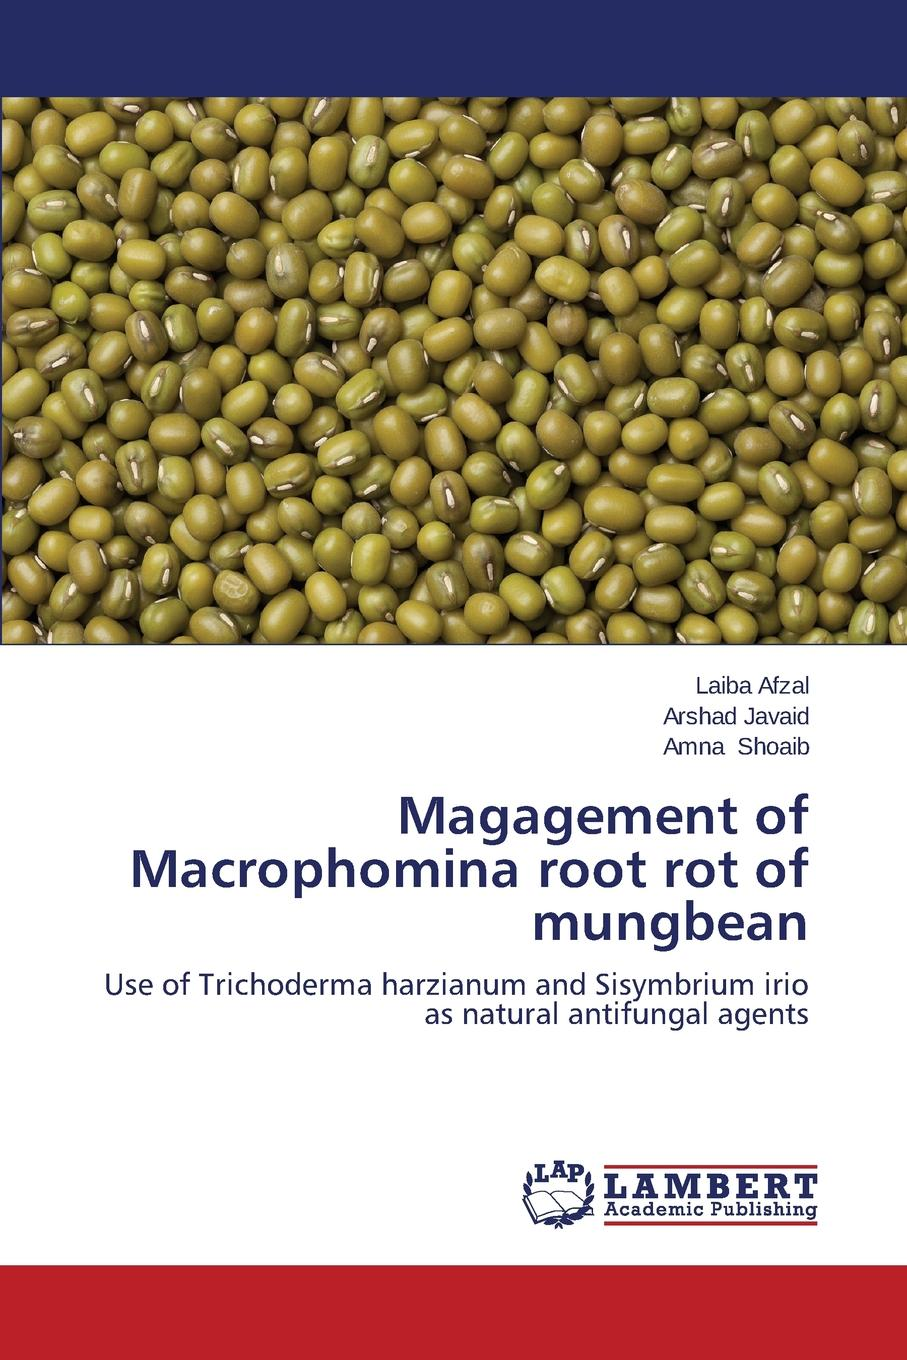 Фото - Afzal Laiba, Javaid Arshad, Shoaib Amna Magagement of Macrophomina root rot of mungbean agent based snort in distributed environment